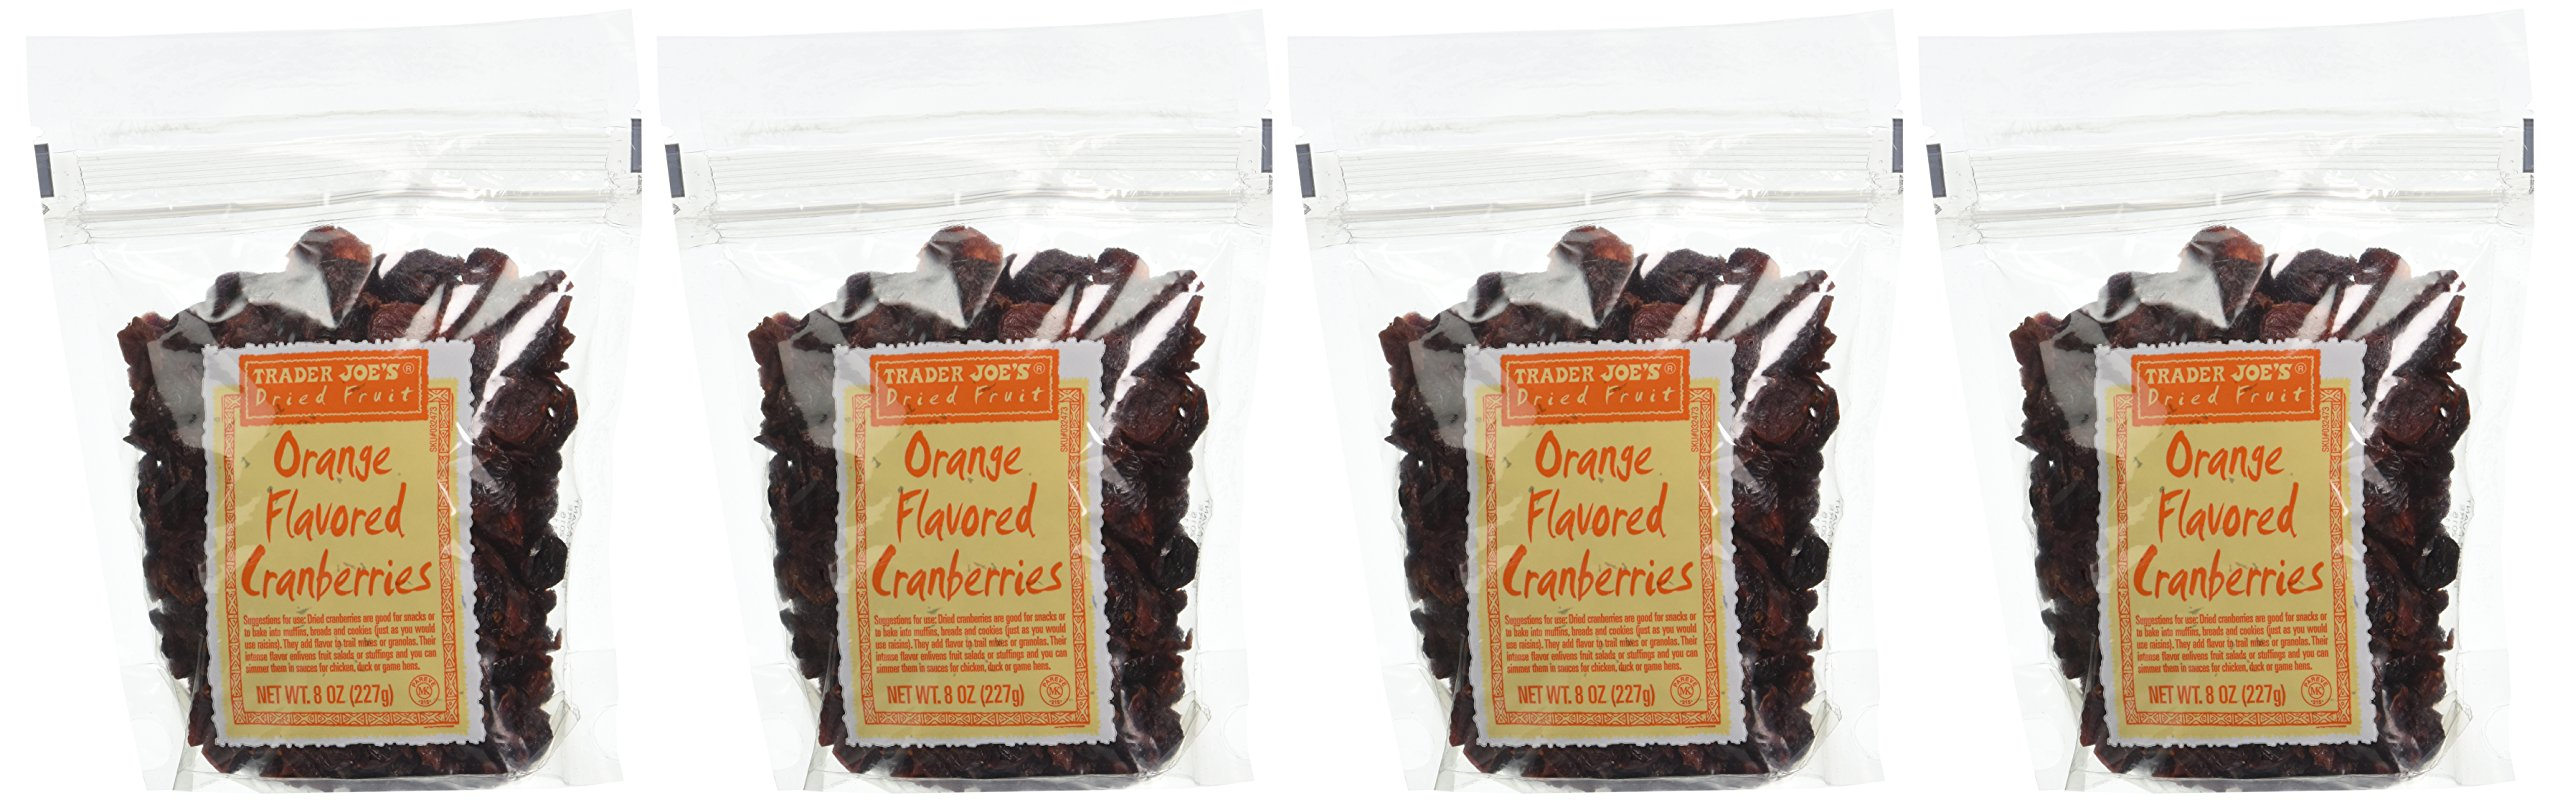 Trader Joe's Dried Fruit: Orange Flavored Cranberries, 8 ounce bags, Set of 4 by Trader Joe (Image #2)